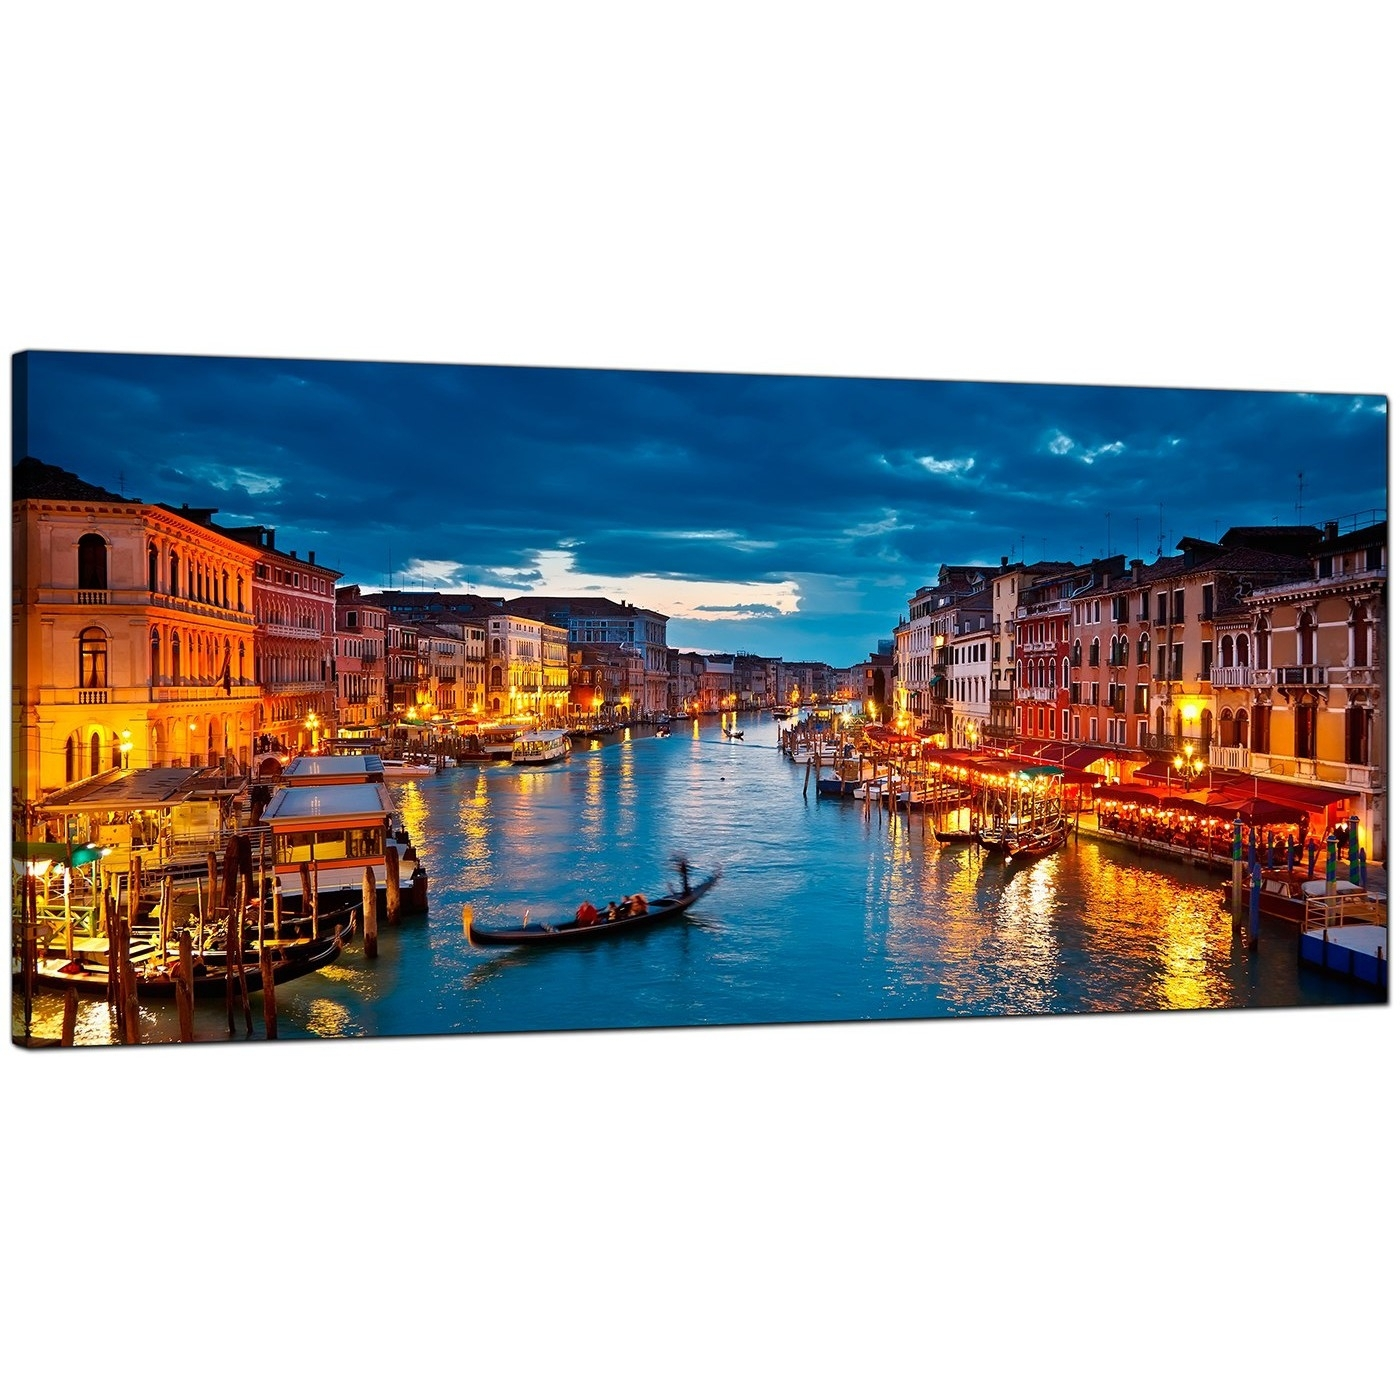 Decor: Inspiring Wall Decor Ideas And Artwork With Large Canvas Wall With Regard To Oversized Canvas Wall Art (View 8 of 20)